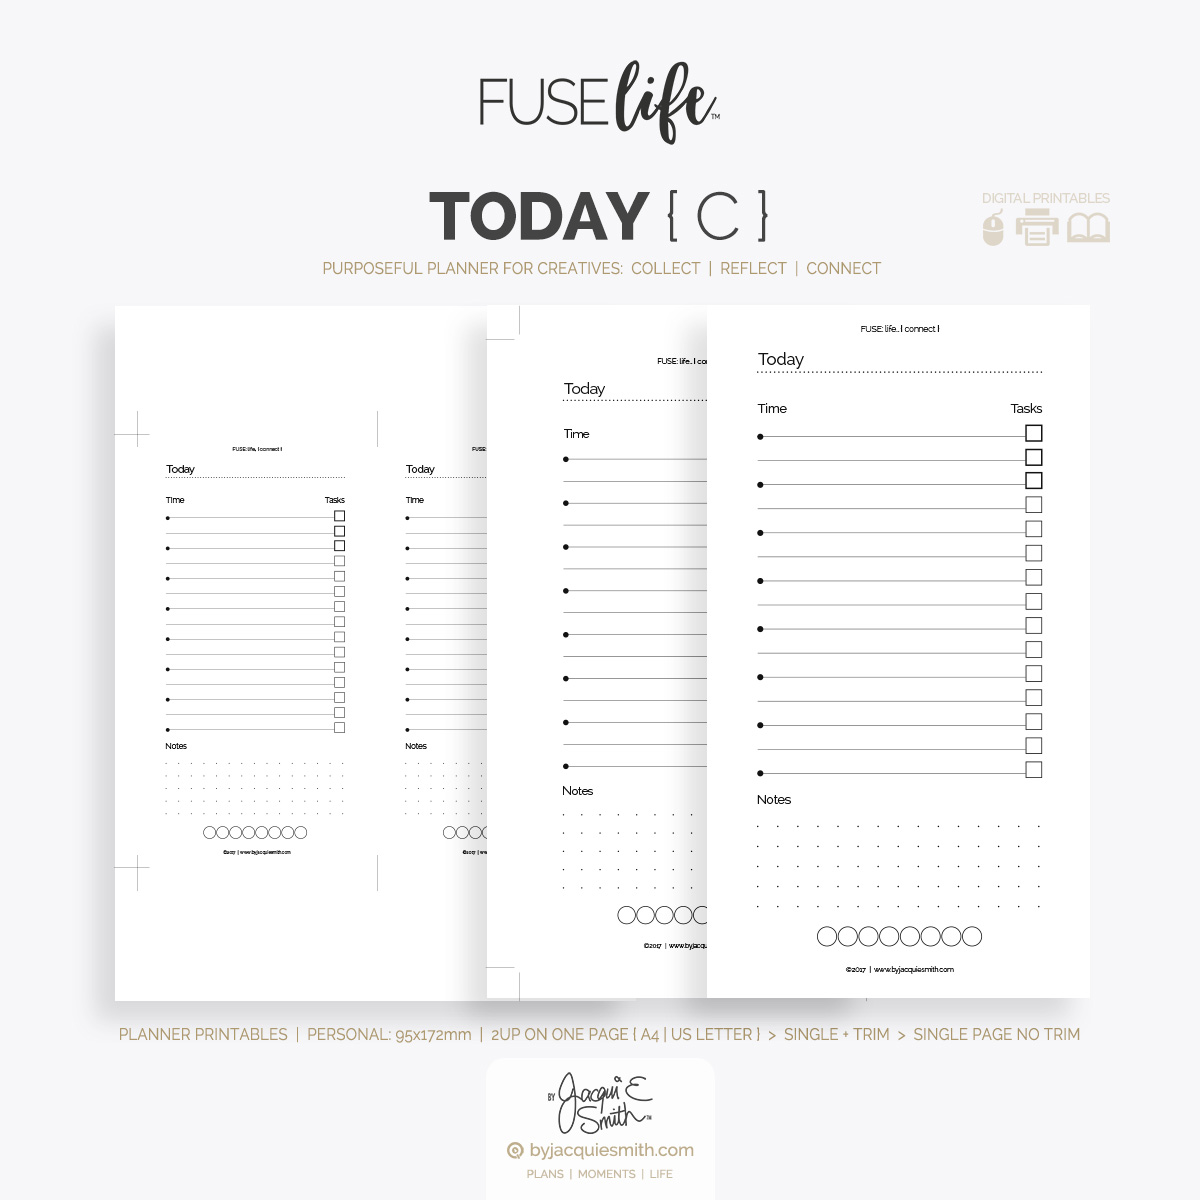 FUSElife planner printables refill today